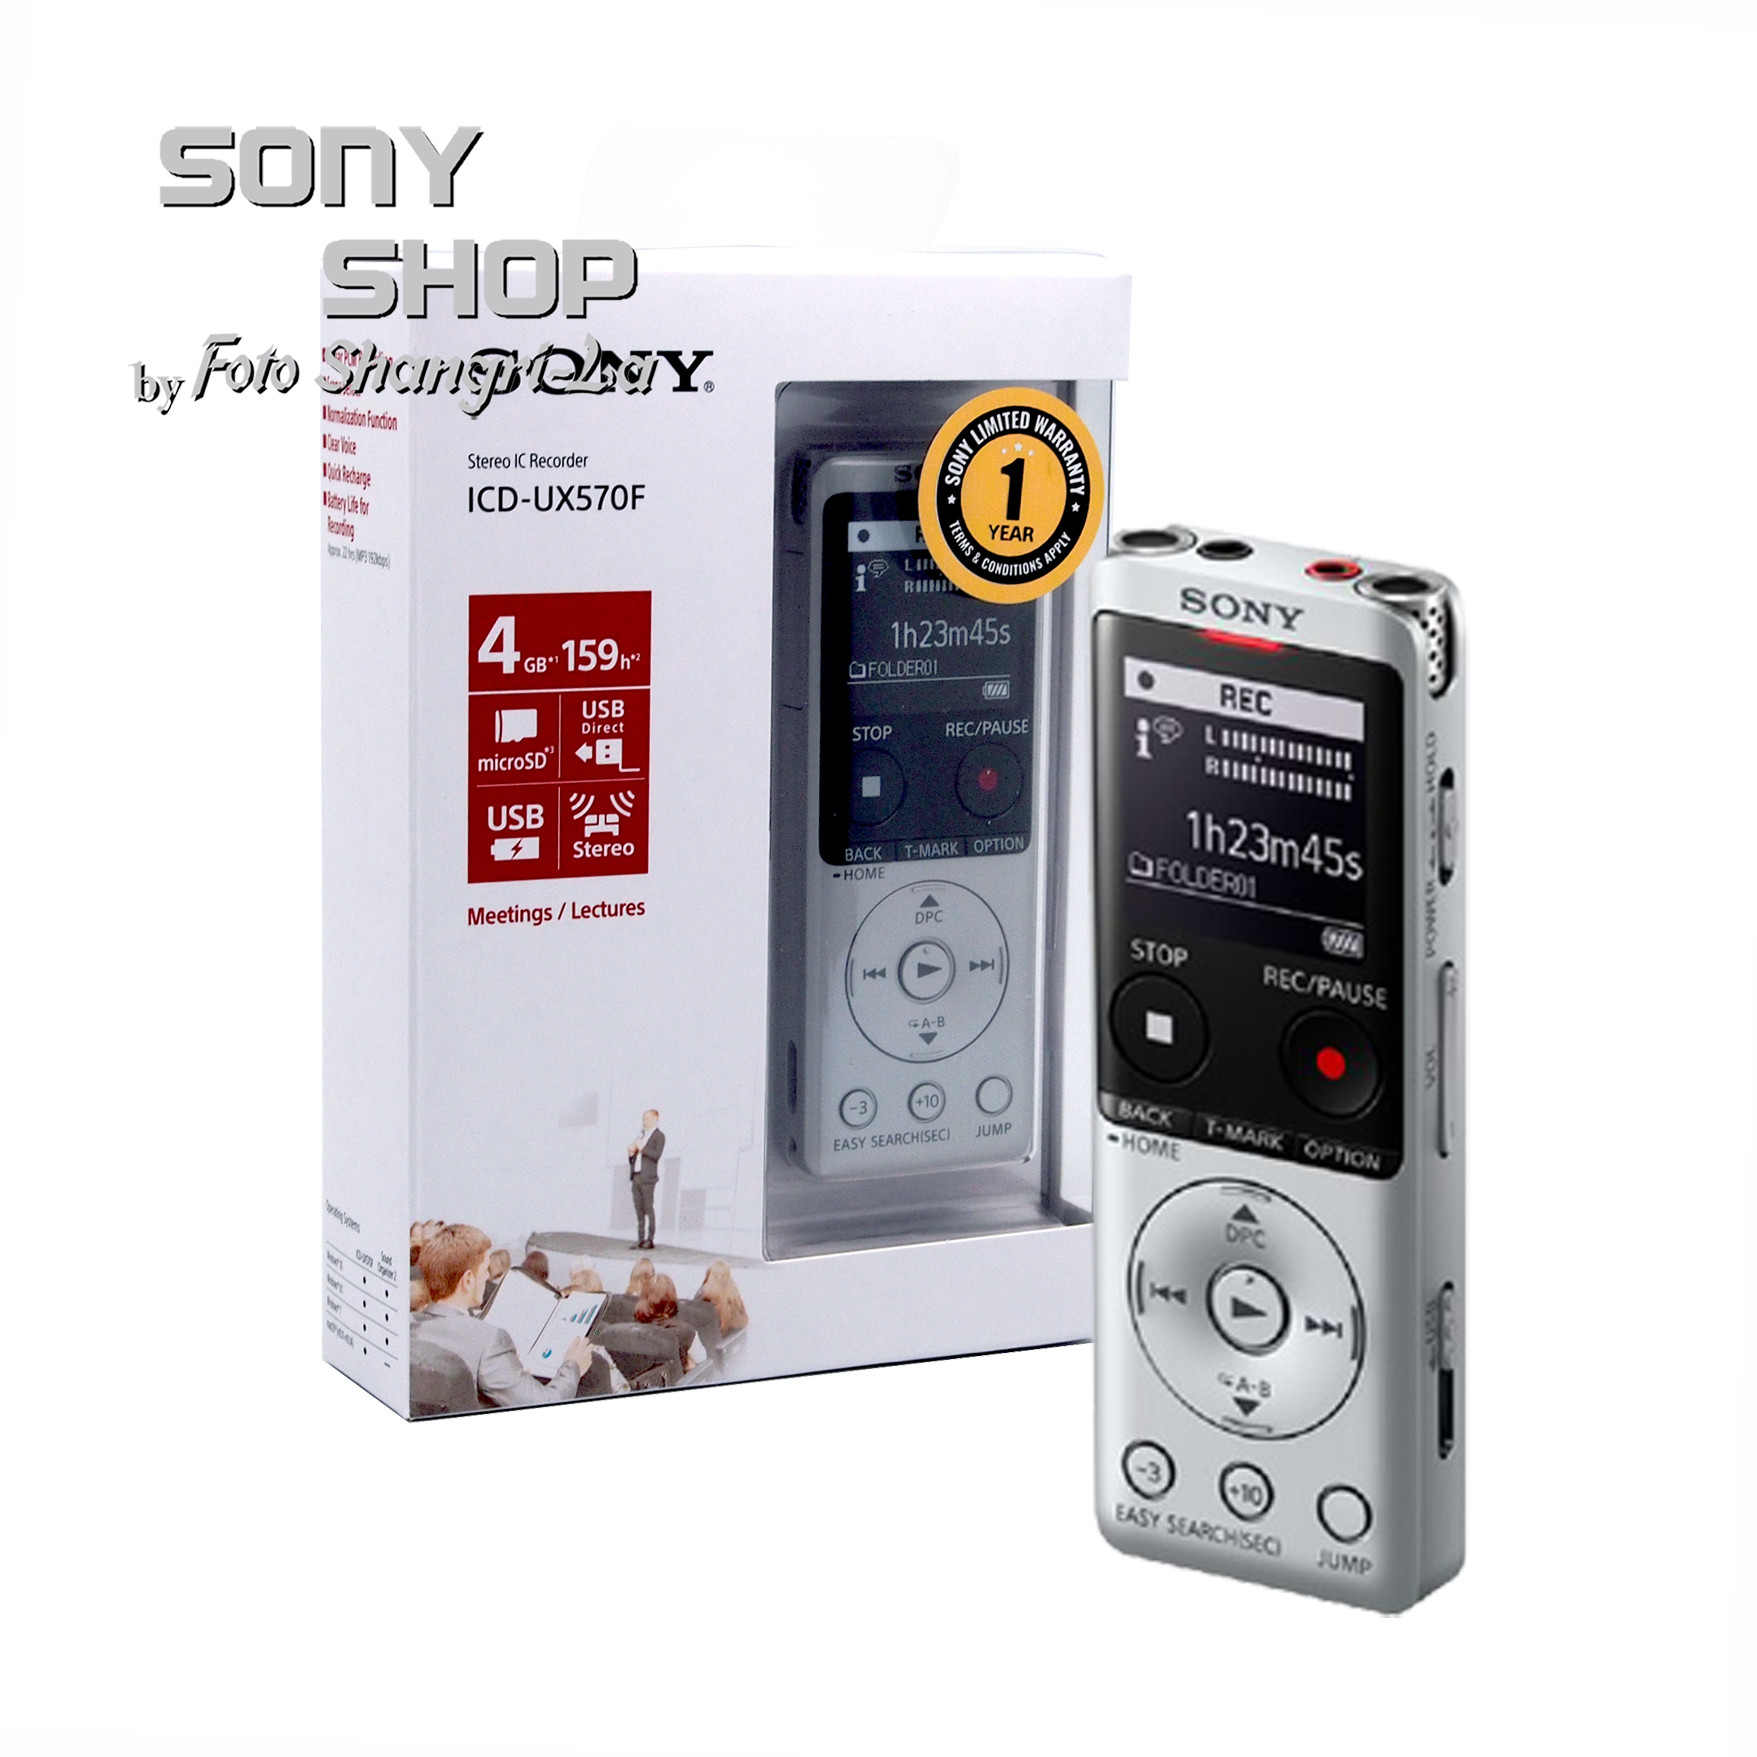 Sony ICD-UX570F Stereo Digital Voice Recorder with Noise Reduce